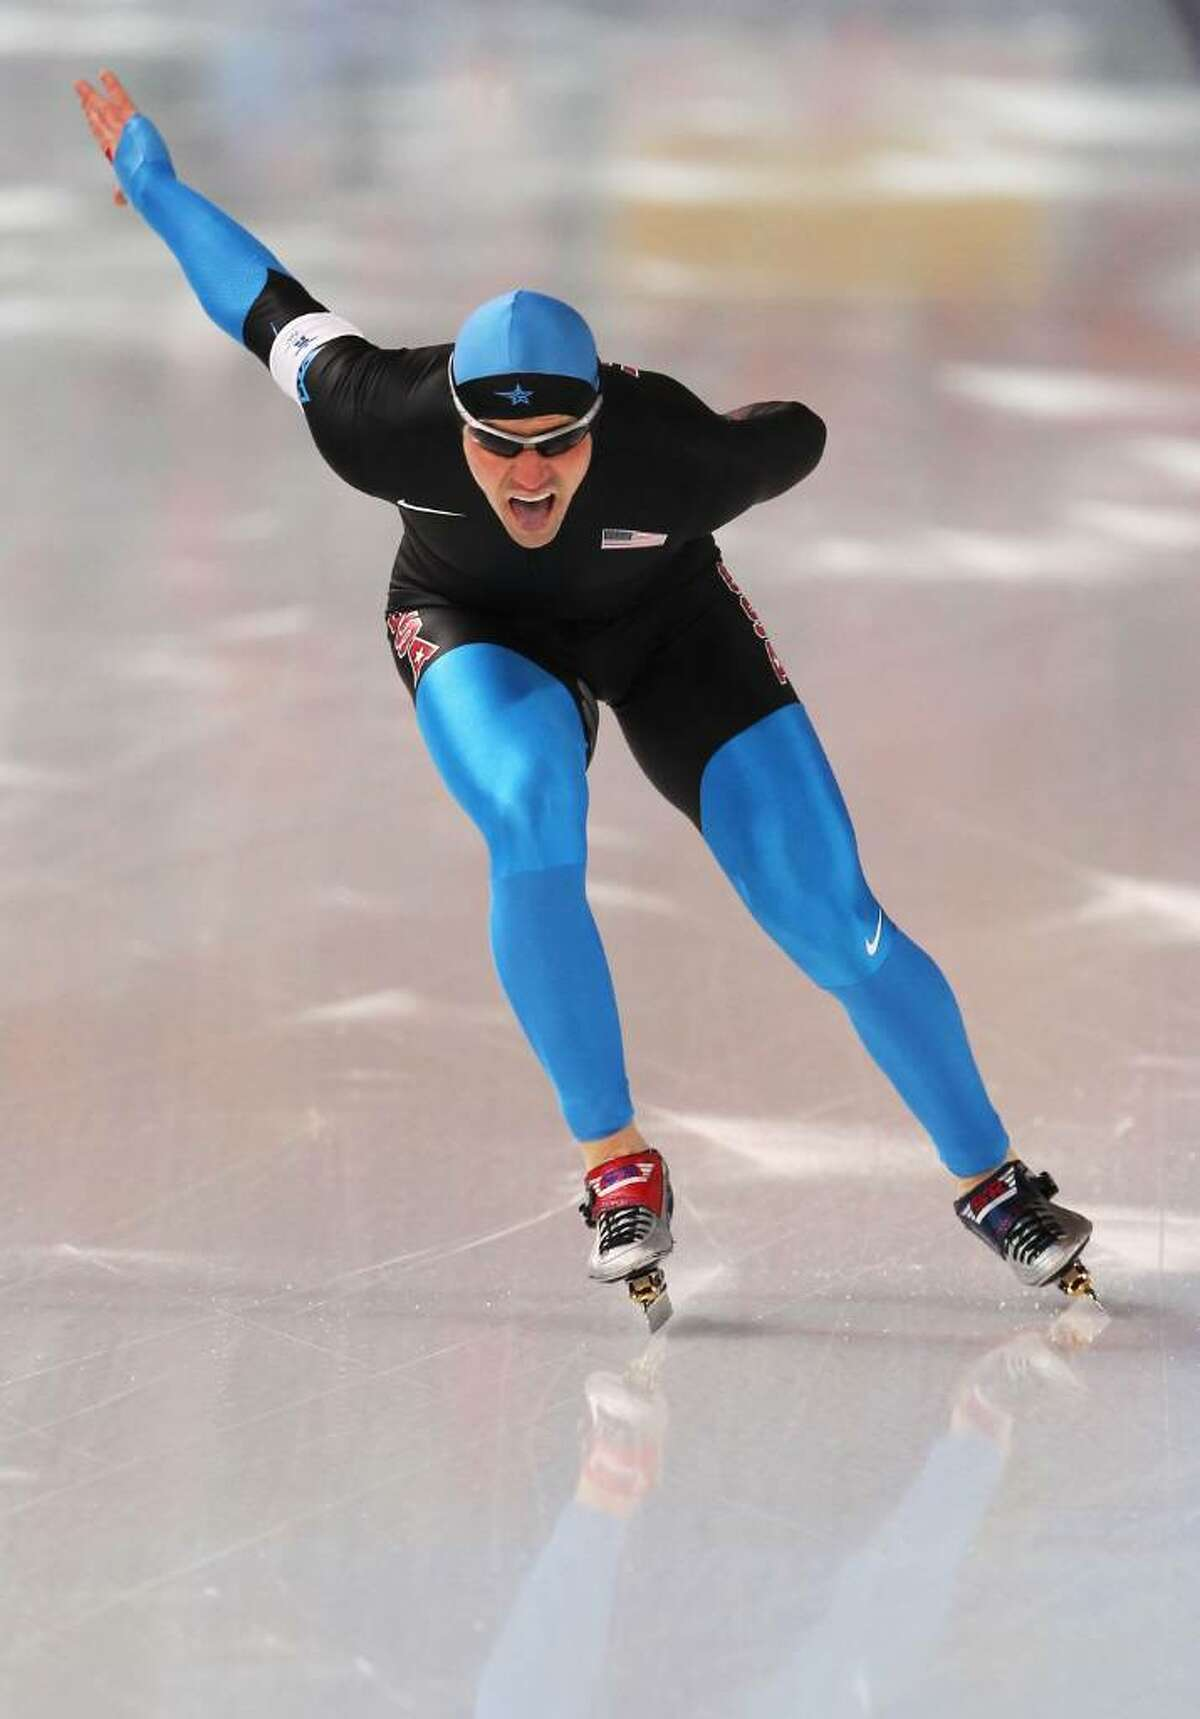 VANCOUVER, BC - FEBRUARY 17: Chad Hedrick of the United States during his men's speed skating 1000 m finals on day six of the Vancouver 2010 Winter Olympics at Richmond Olympic Oval on February 17, 2010 in Vancouver, Canada. (Photo by Jamie Squire/Getty Images) *** Local Caption *** Chad Hedrick